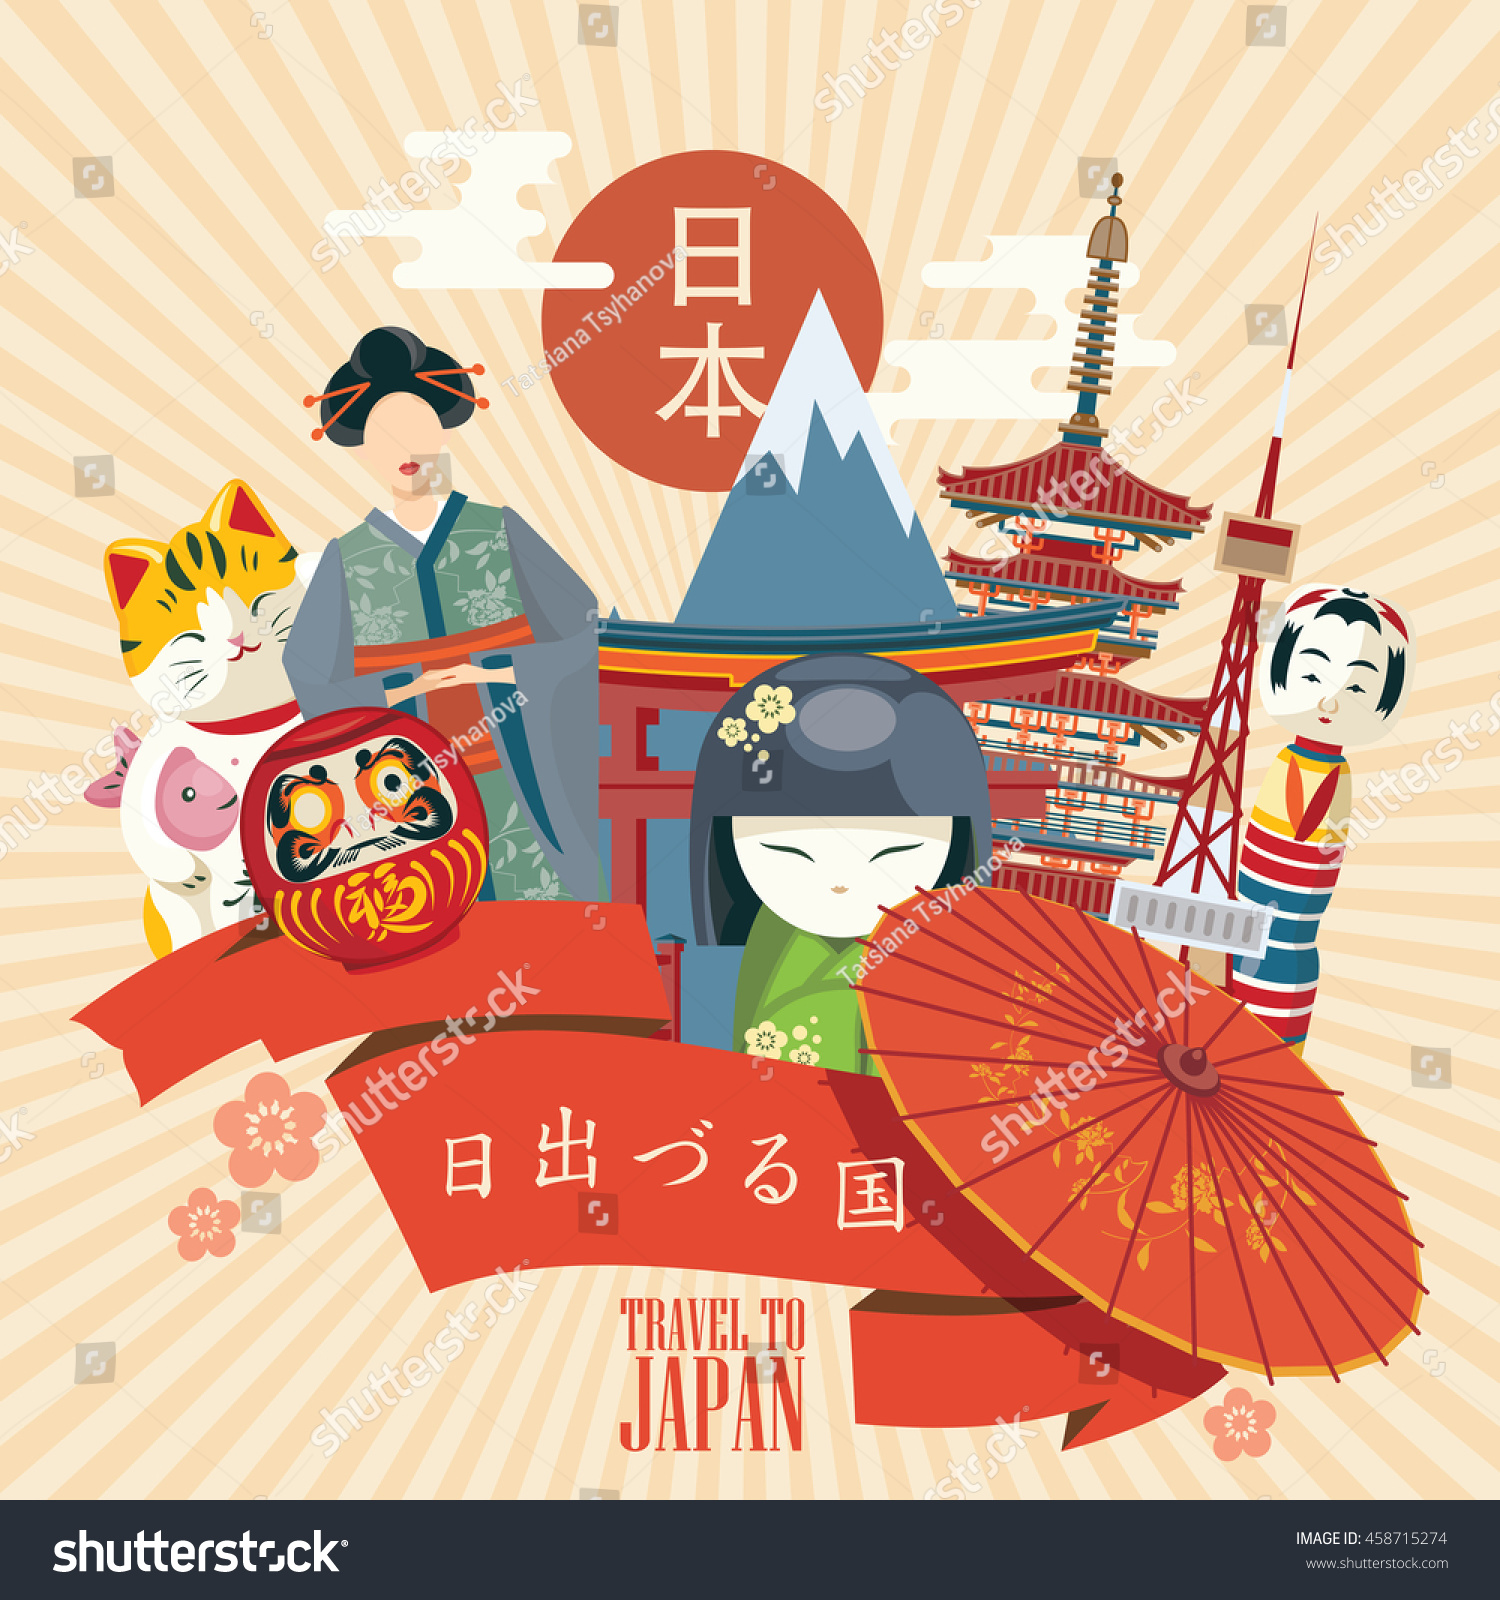 Colorful Japan Travel Poster Travel Japan Stock Vector Royalty Free